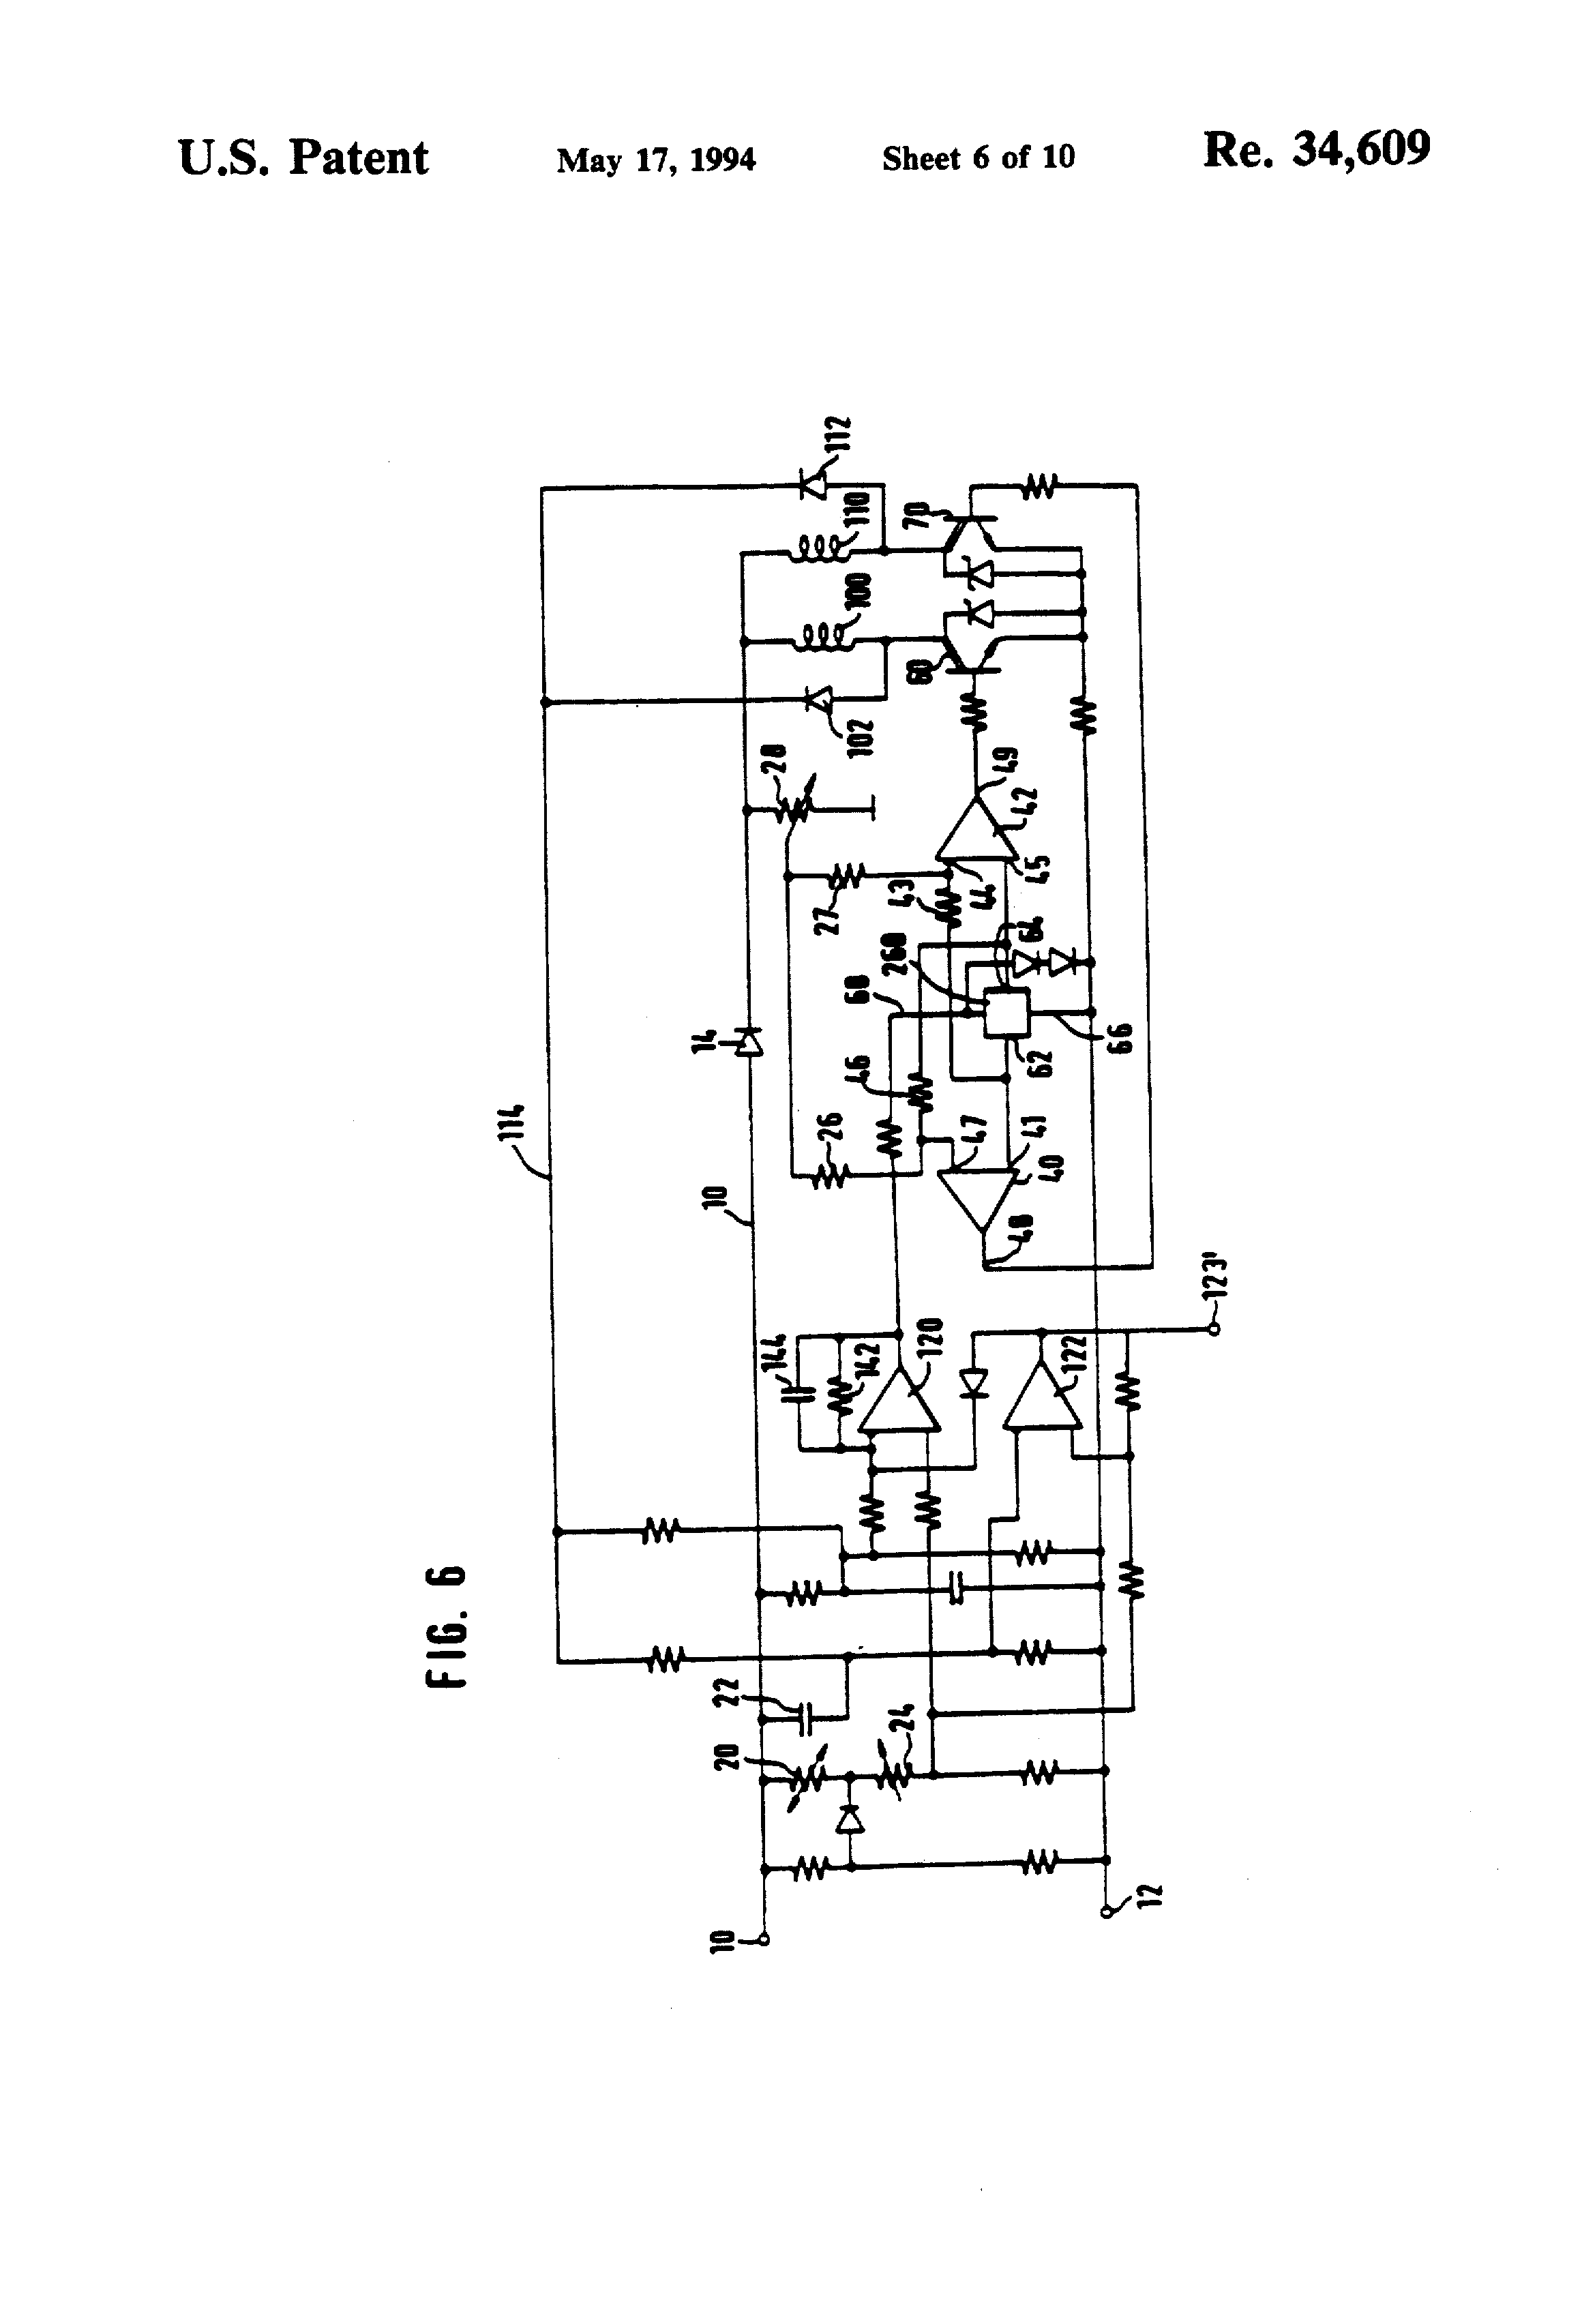 Patent Usre34609 Collectorless Direct Current Motor